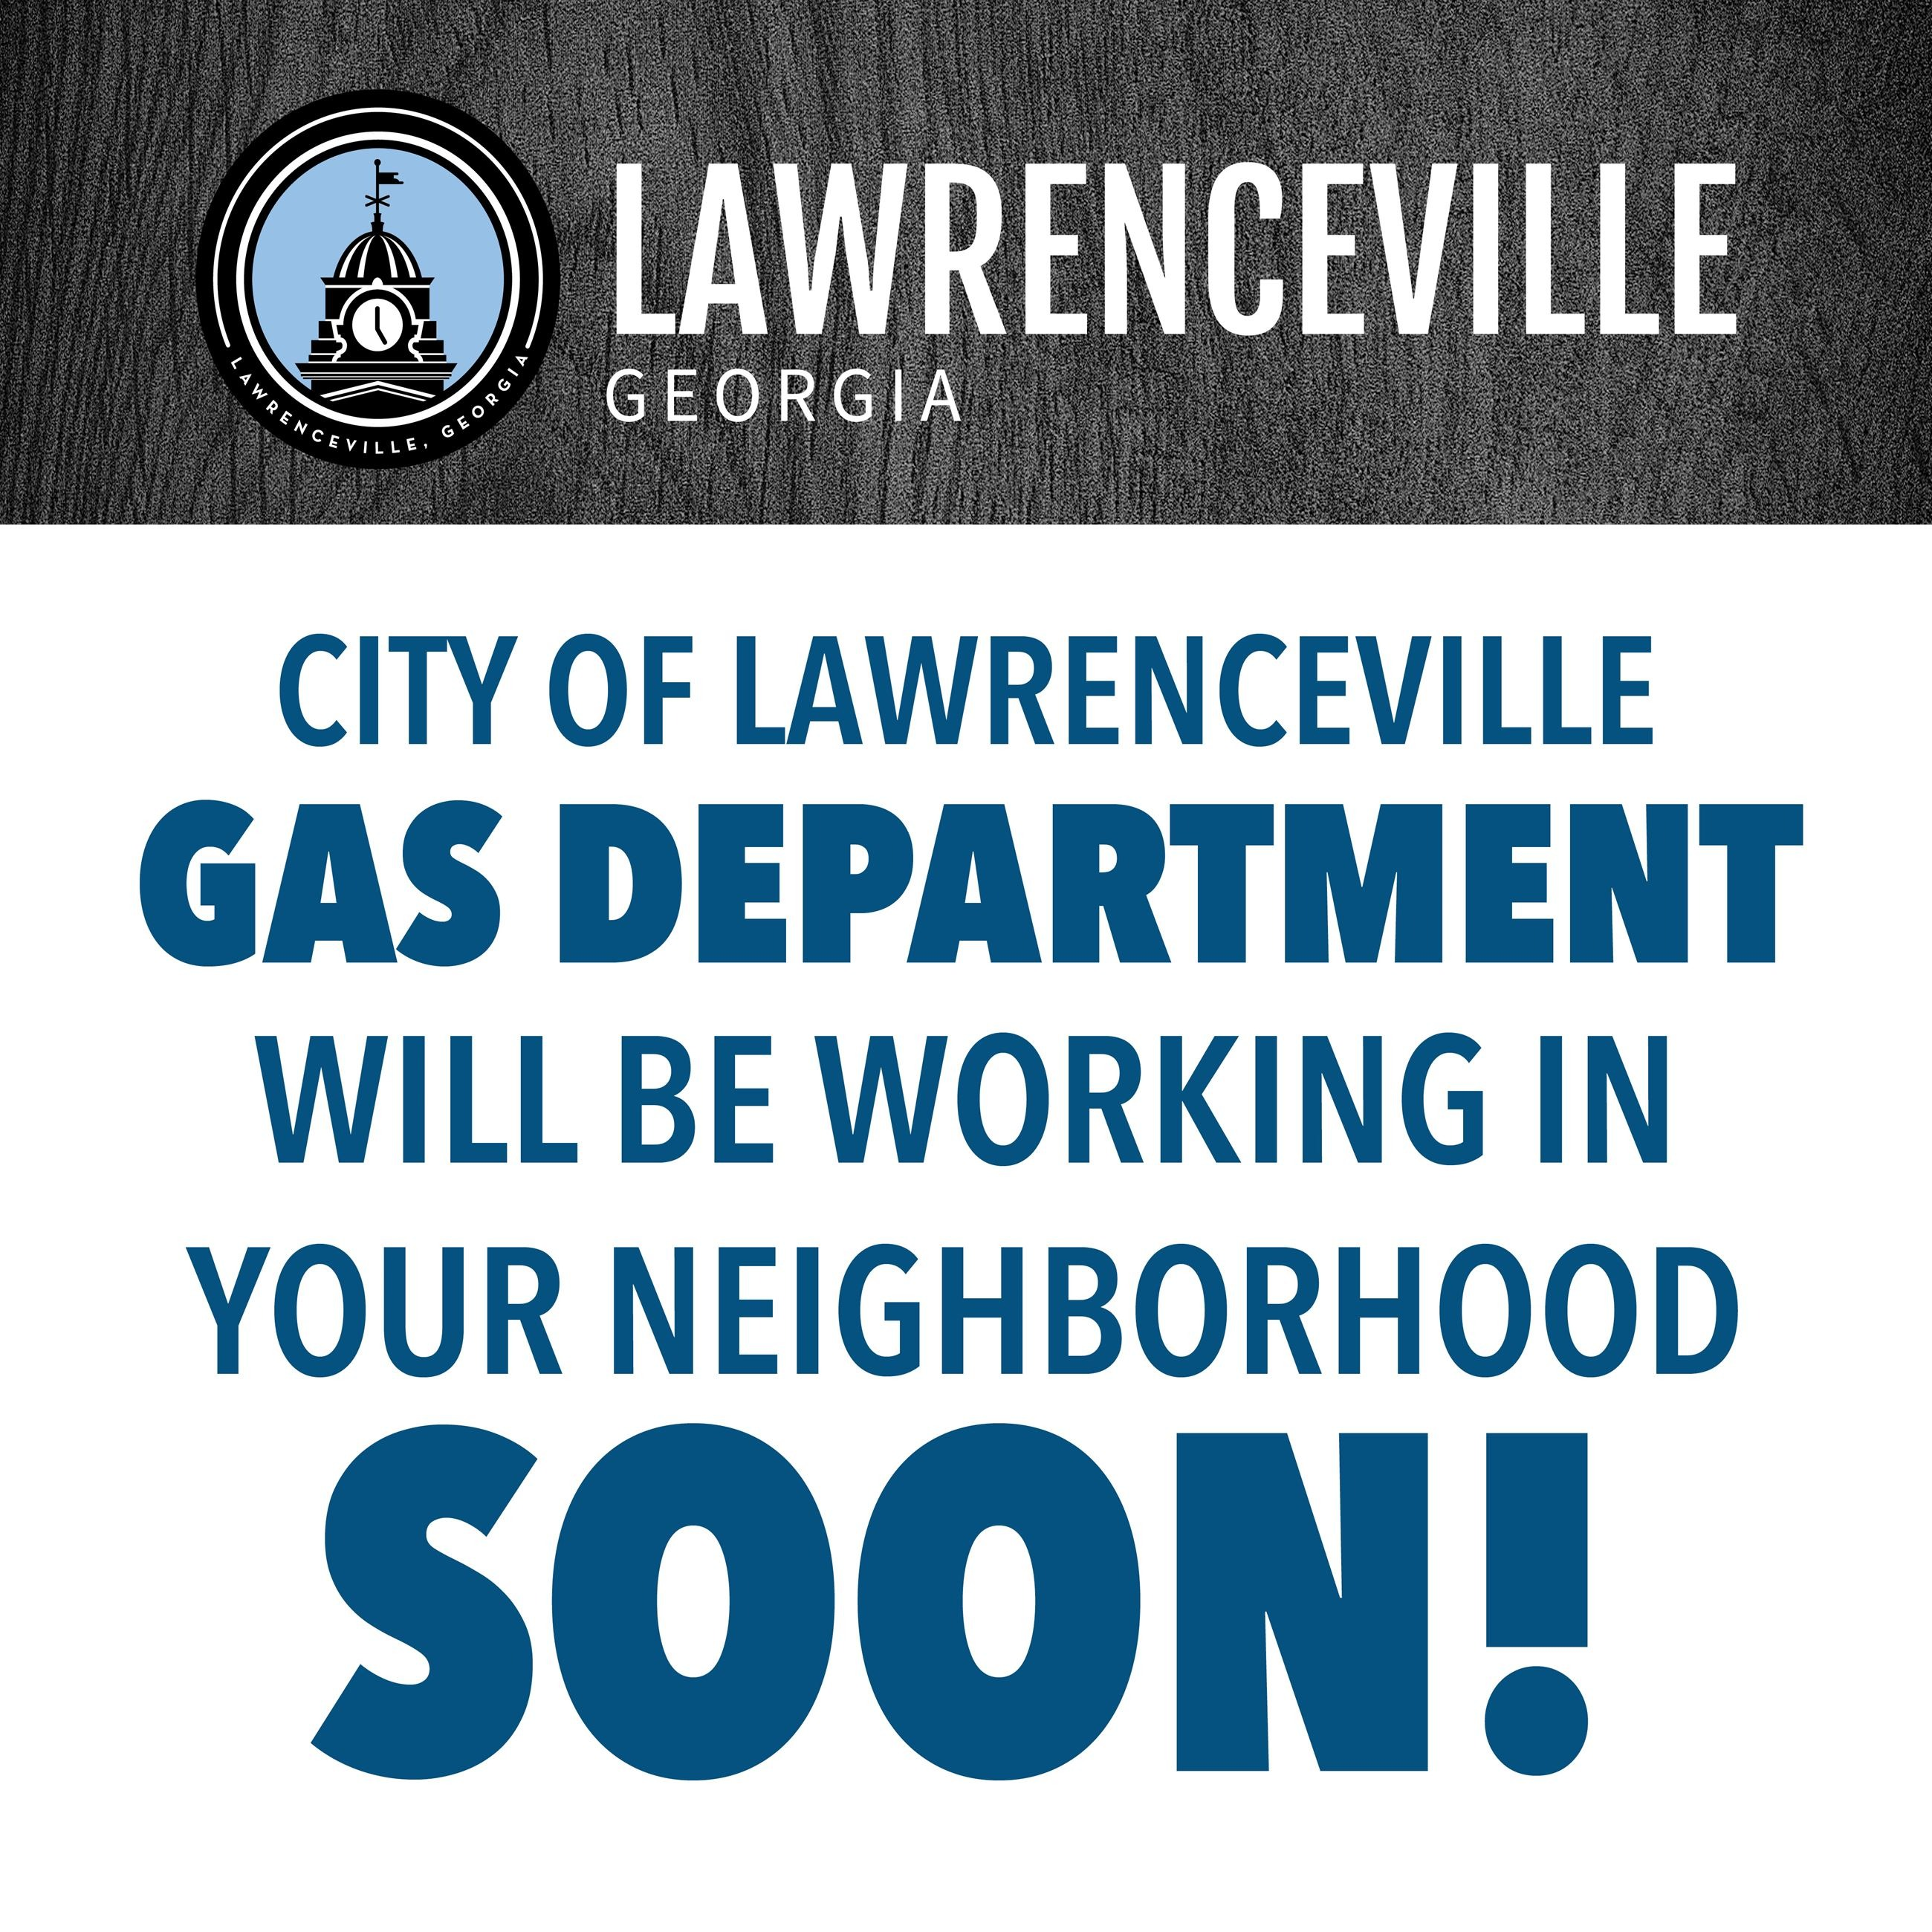 Lawrenceville Gas Department Graphic